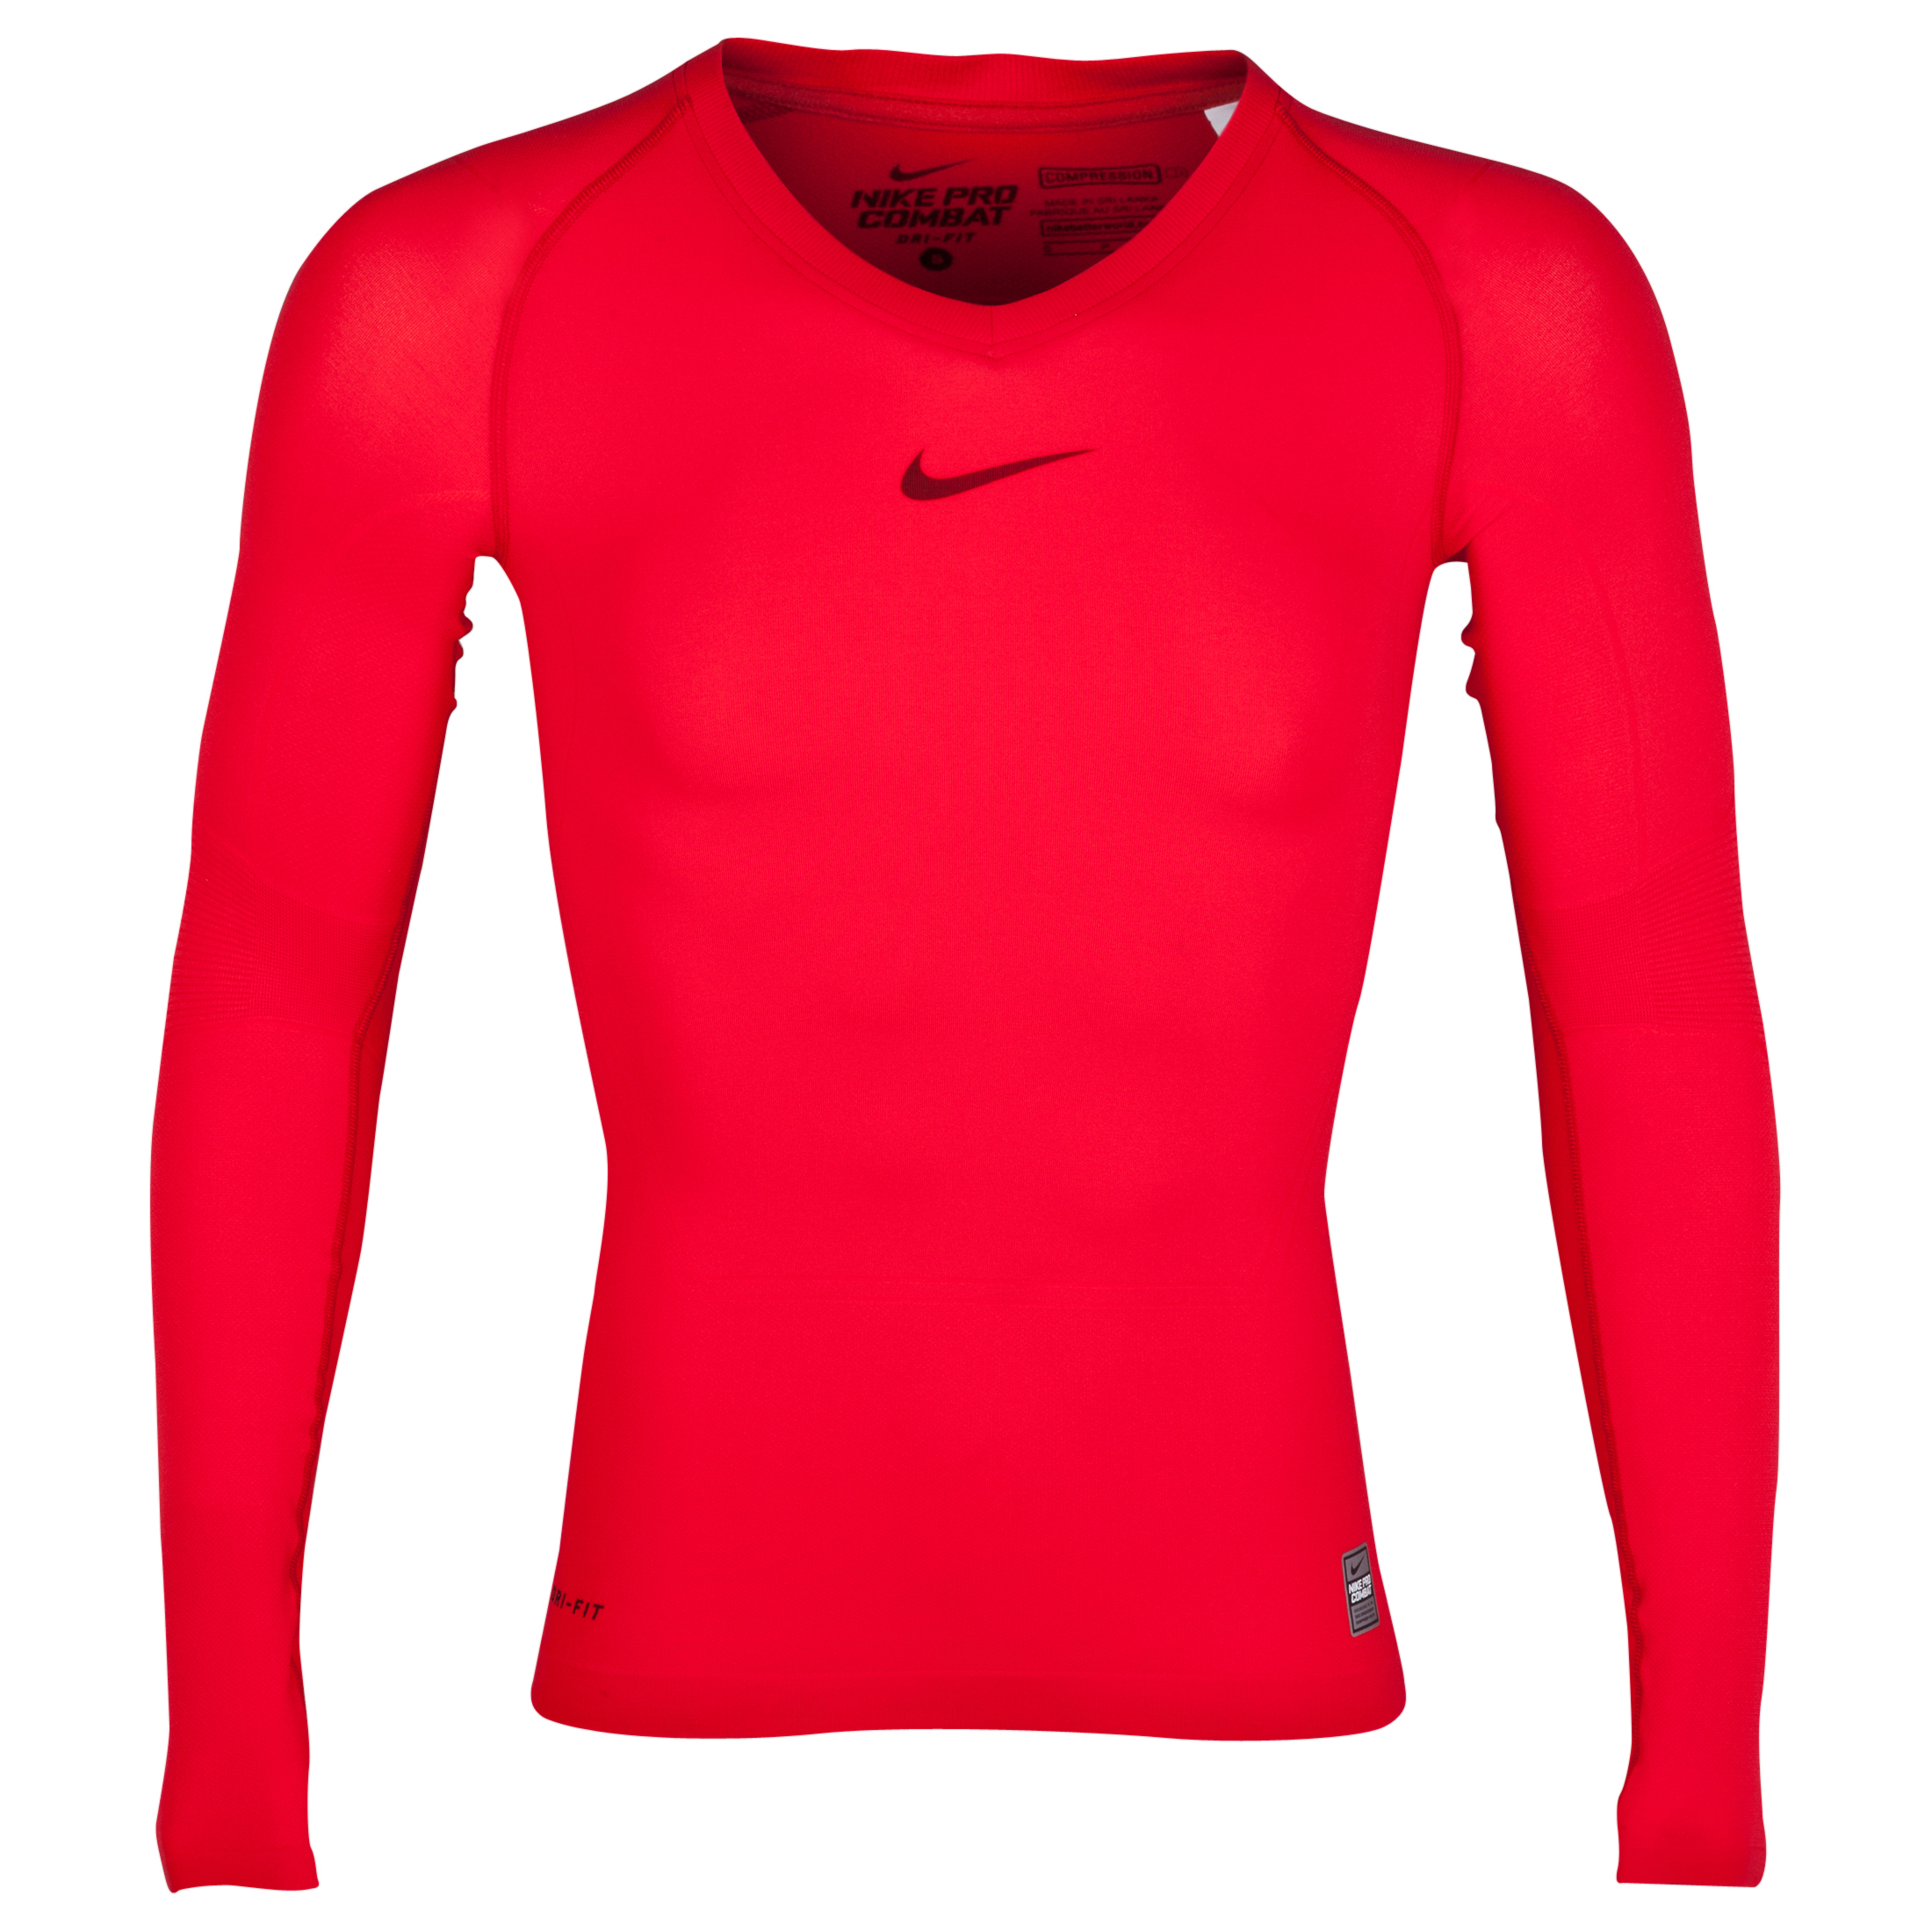 Nike Pro Combat Lightweight Seamless Base Layer Top - Long Sleeve Red